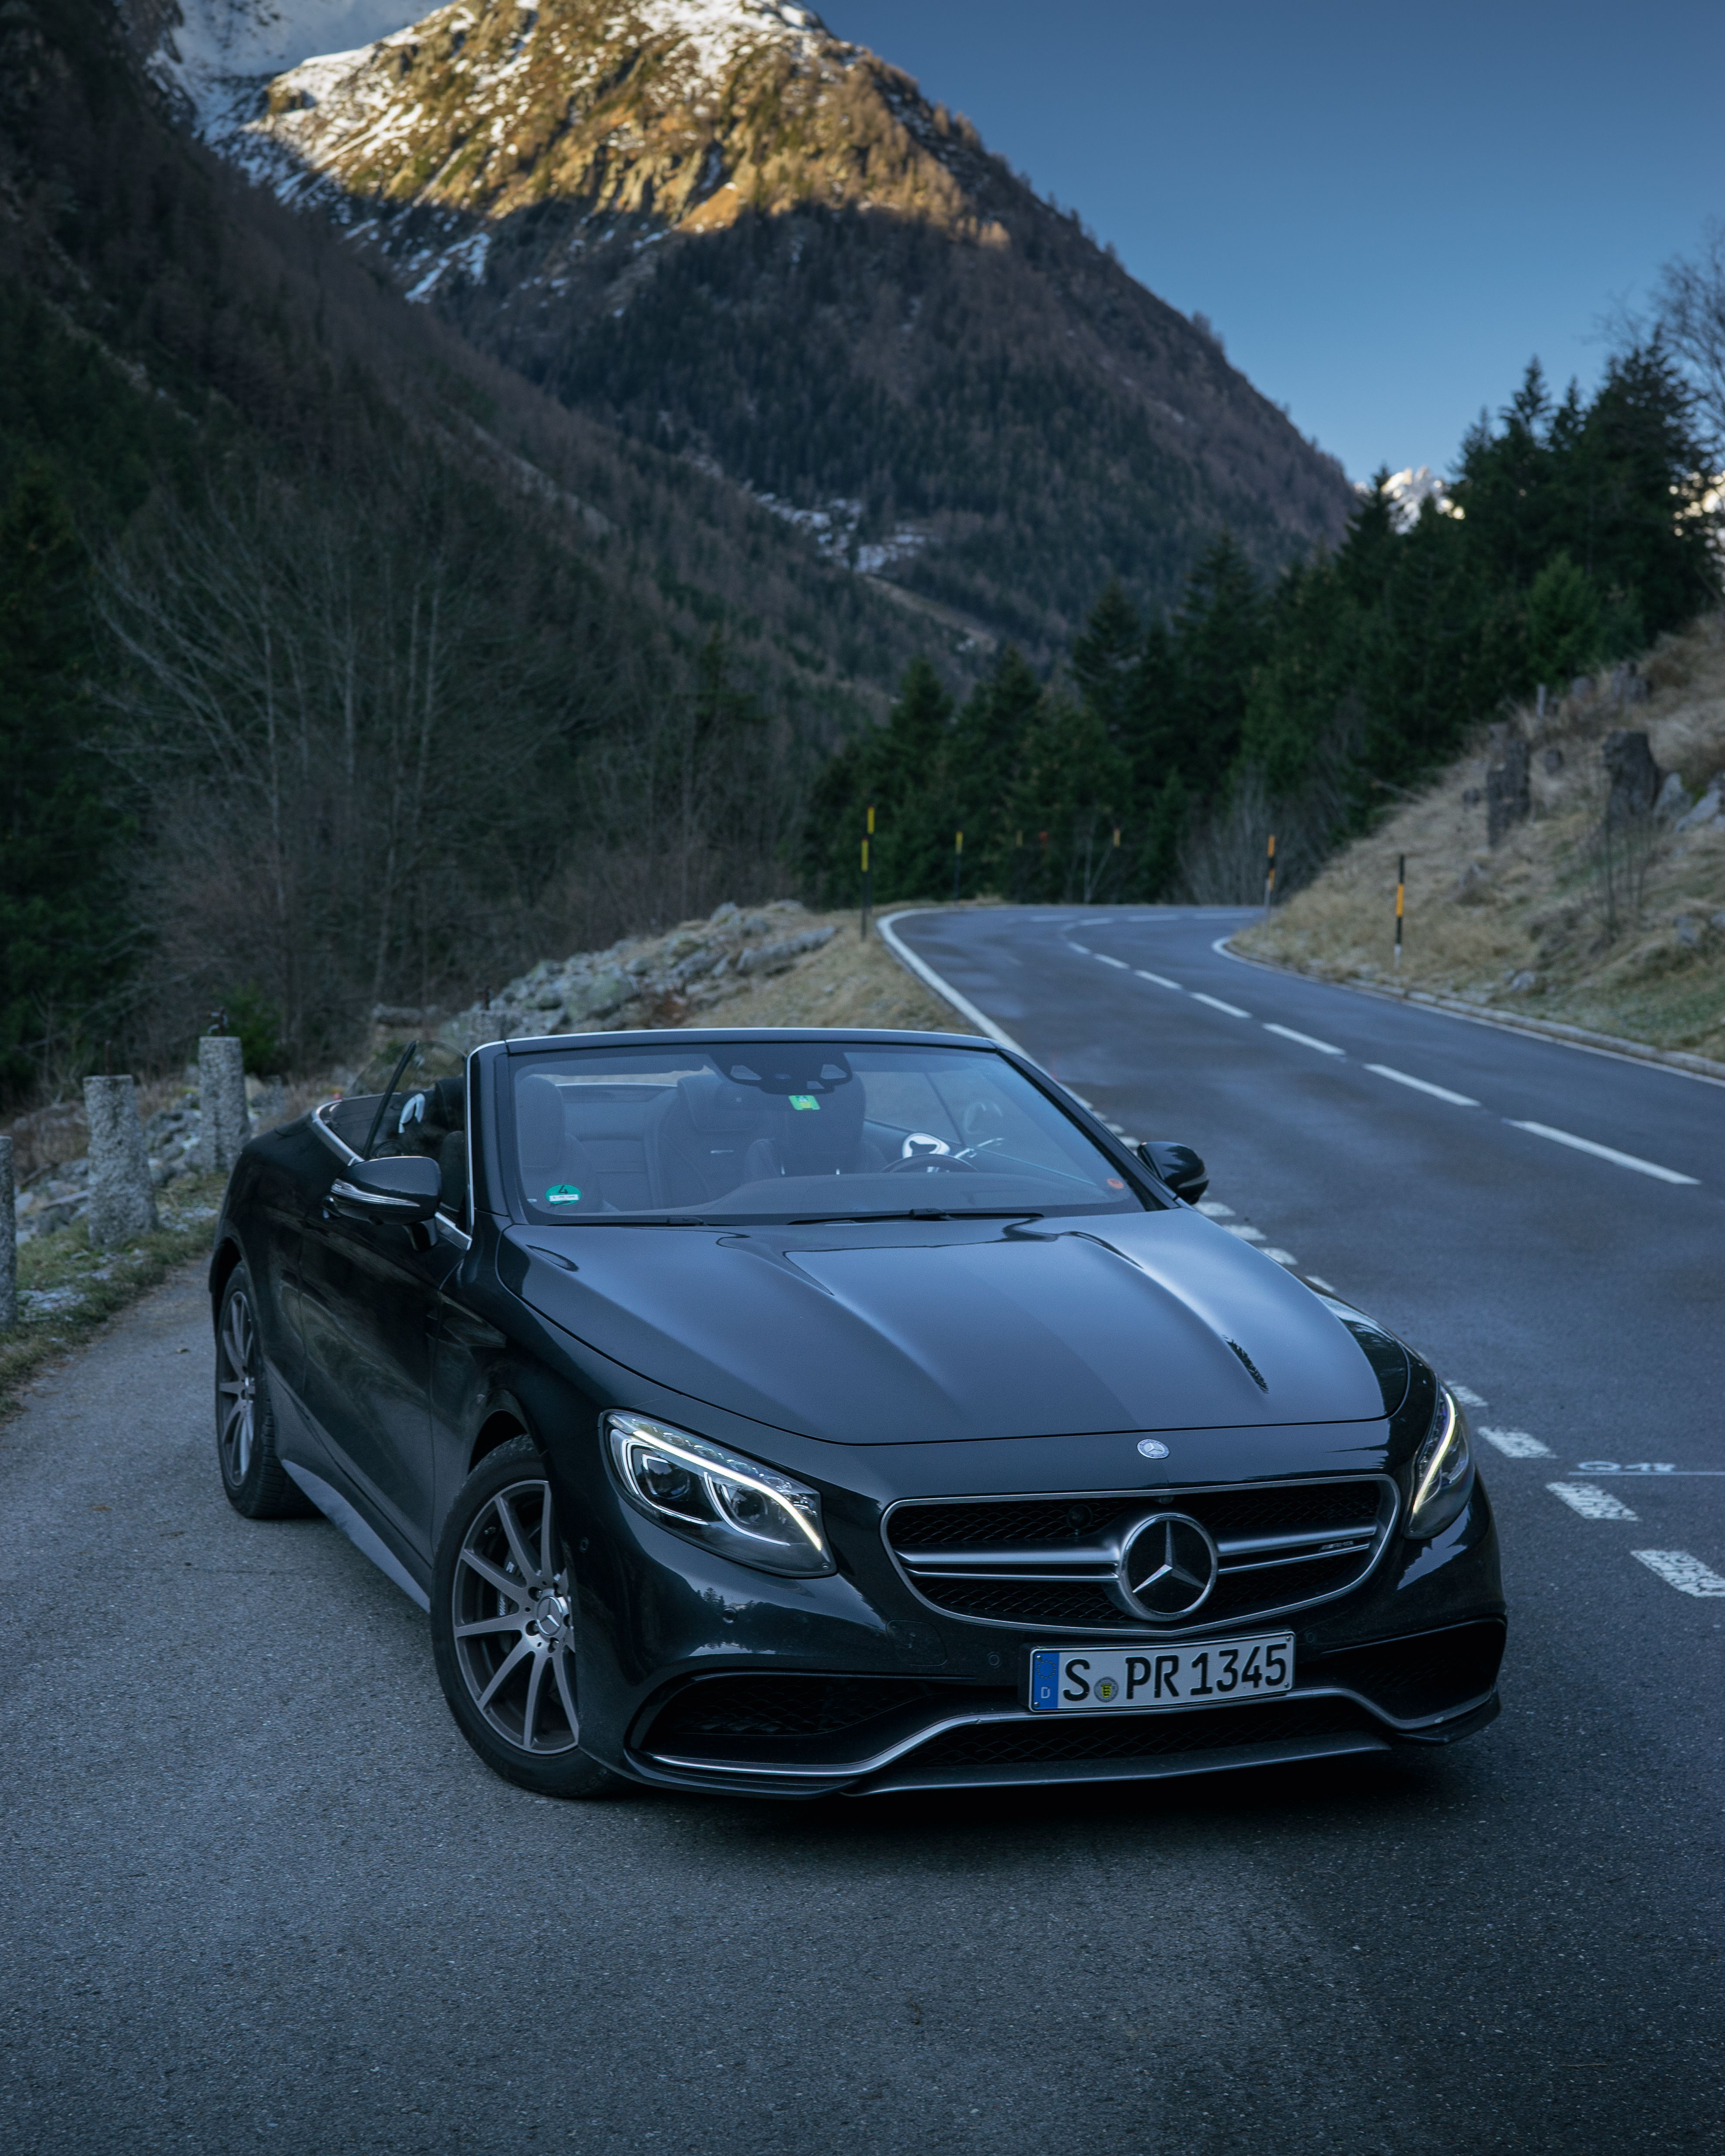 medium resolution of open top luxury the mercedes benz s 63 cabriolet photo by korhan